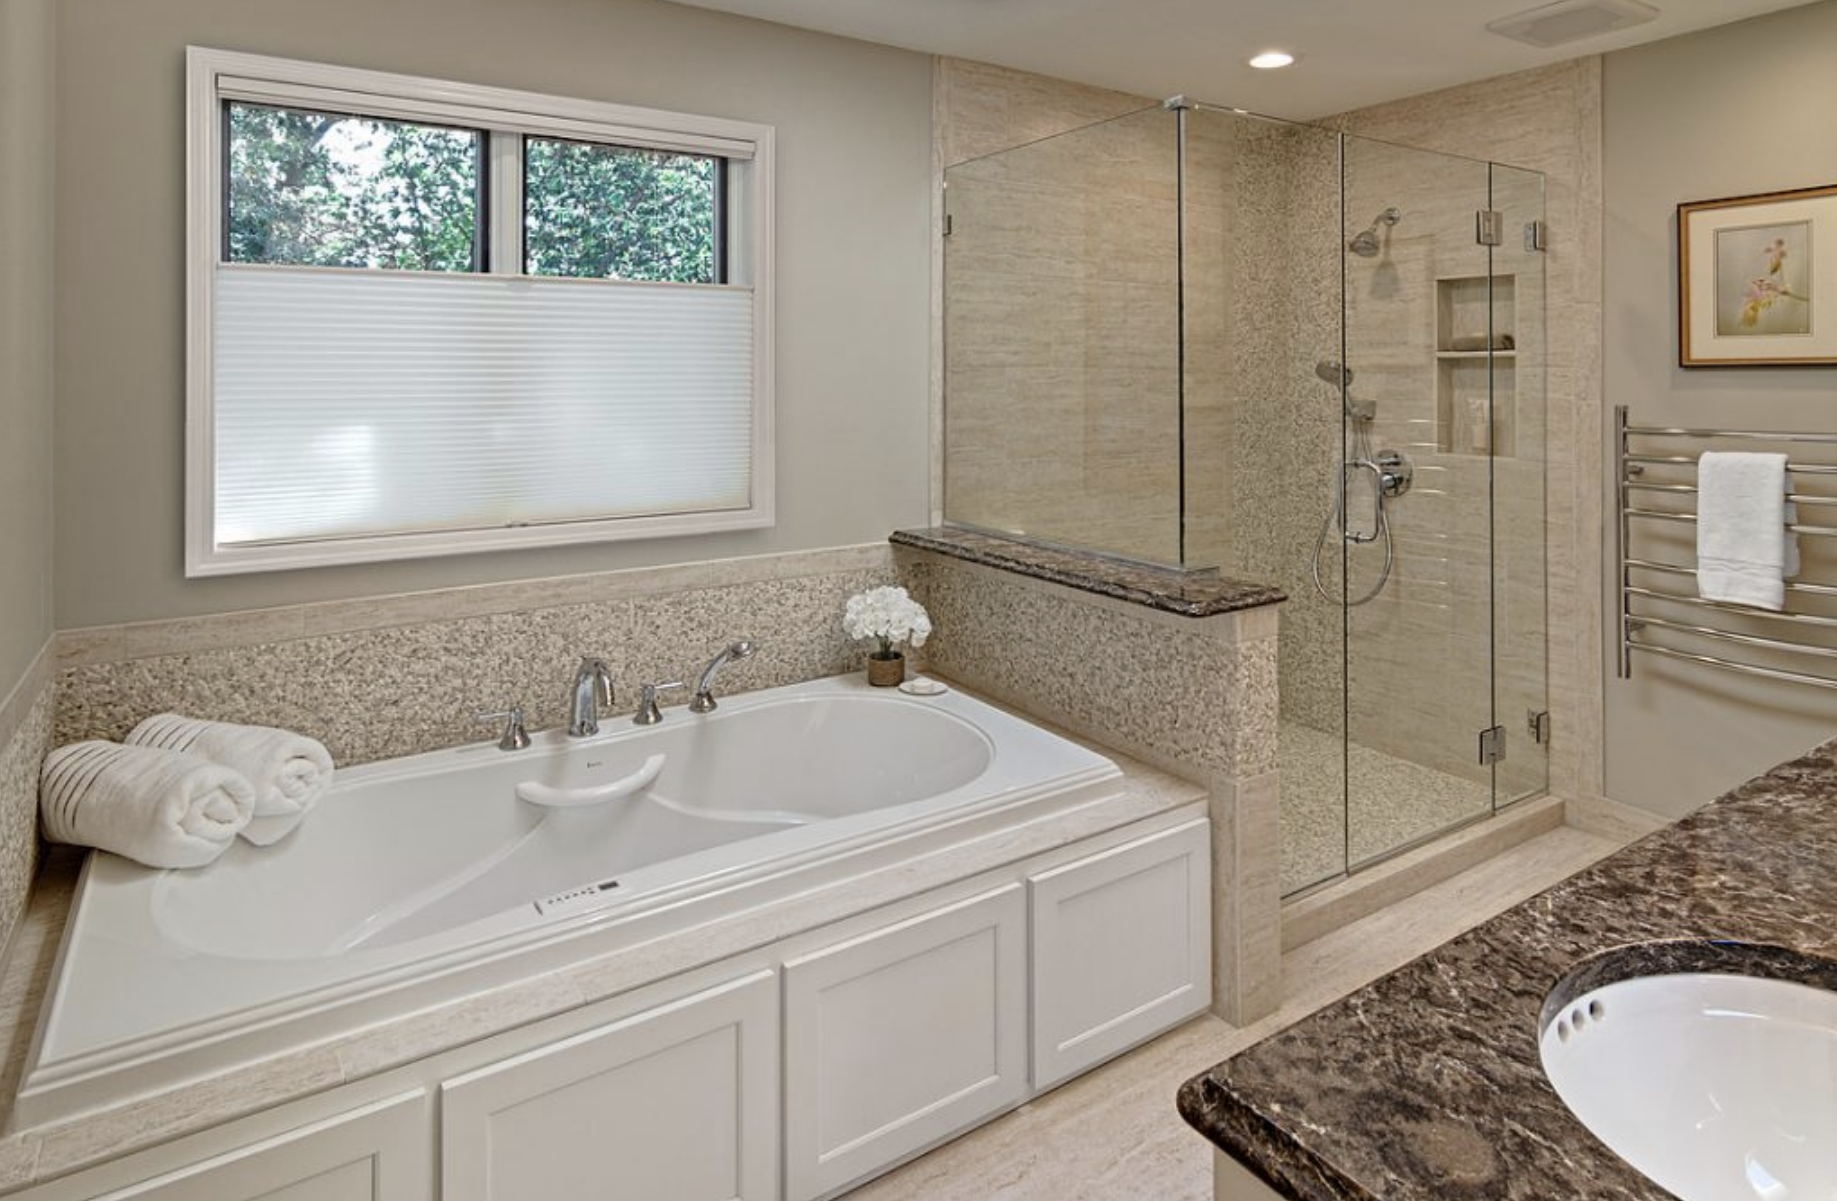 The final tub and shower felt much more open, allowing light to penetrate the entire bathroom and making everything feel much larger.